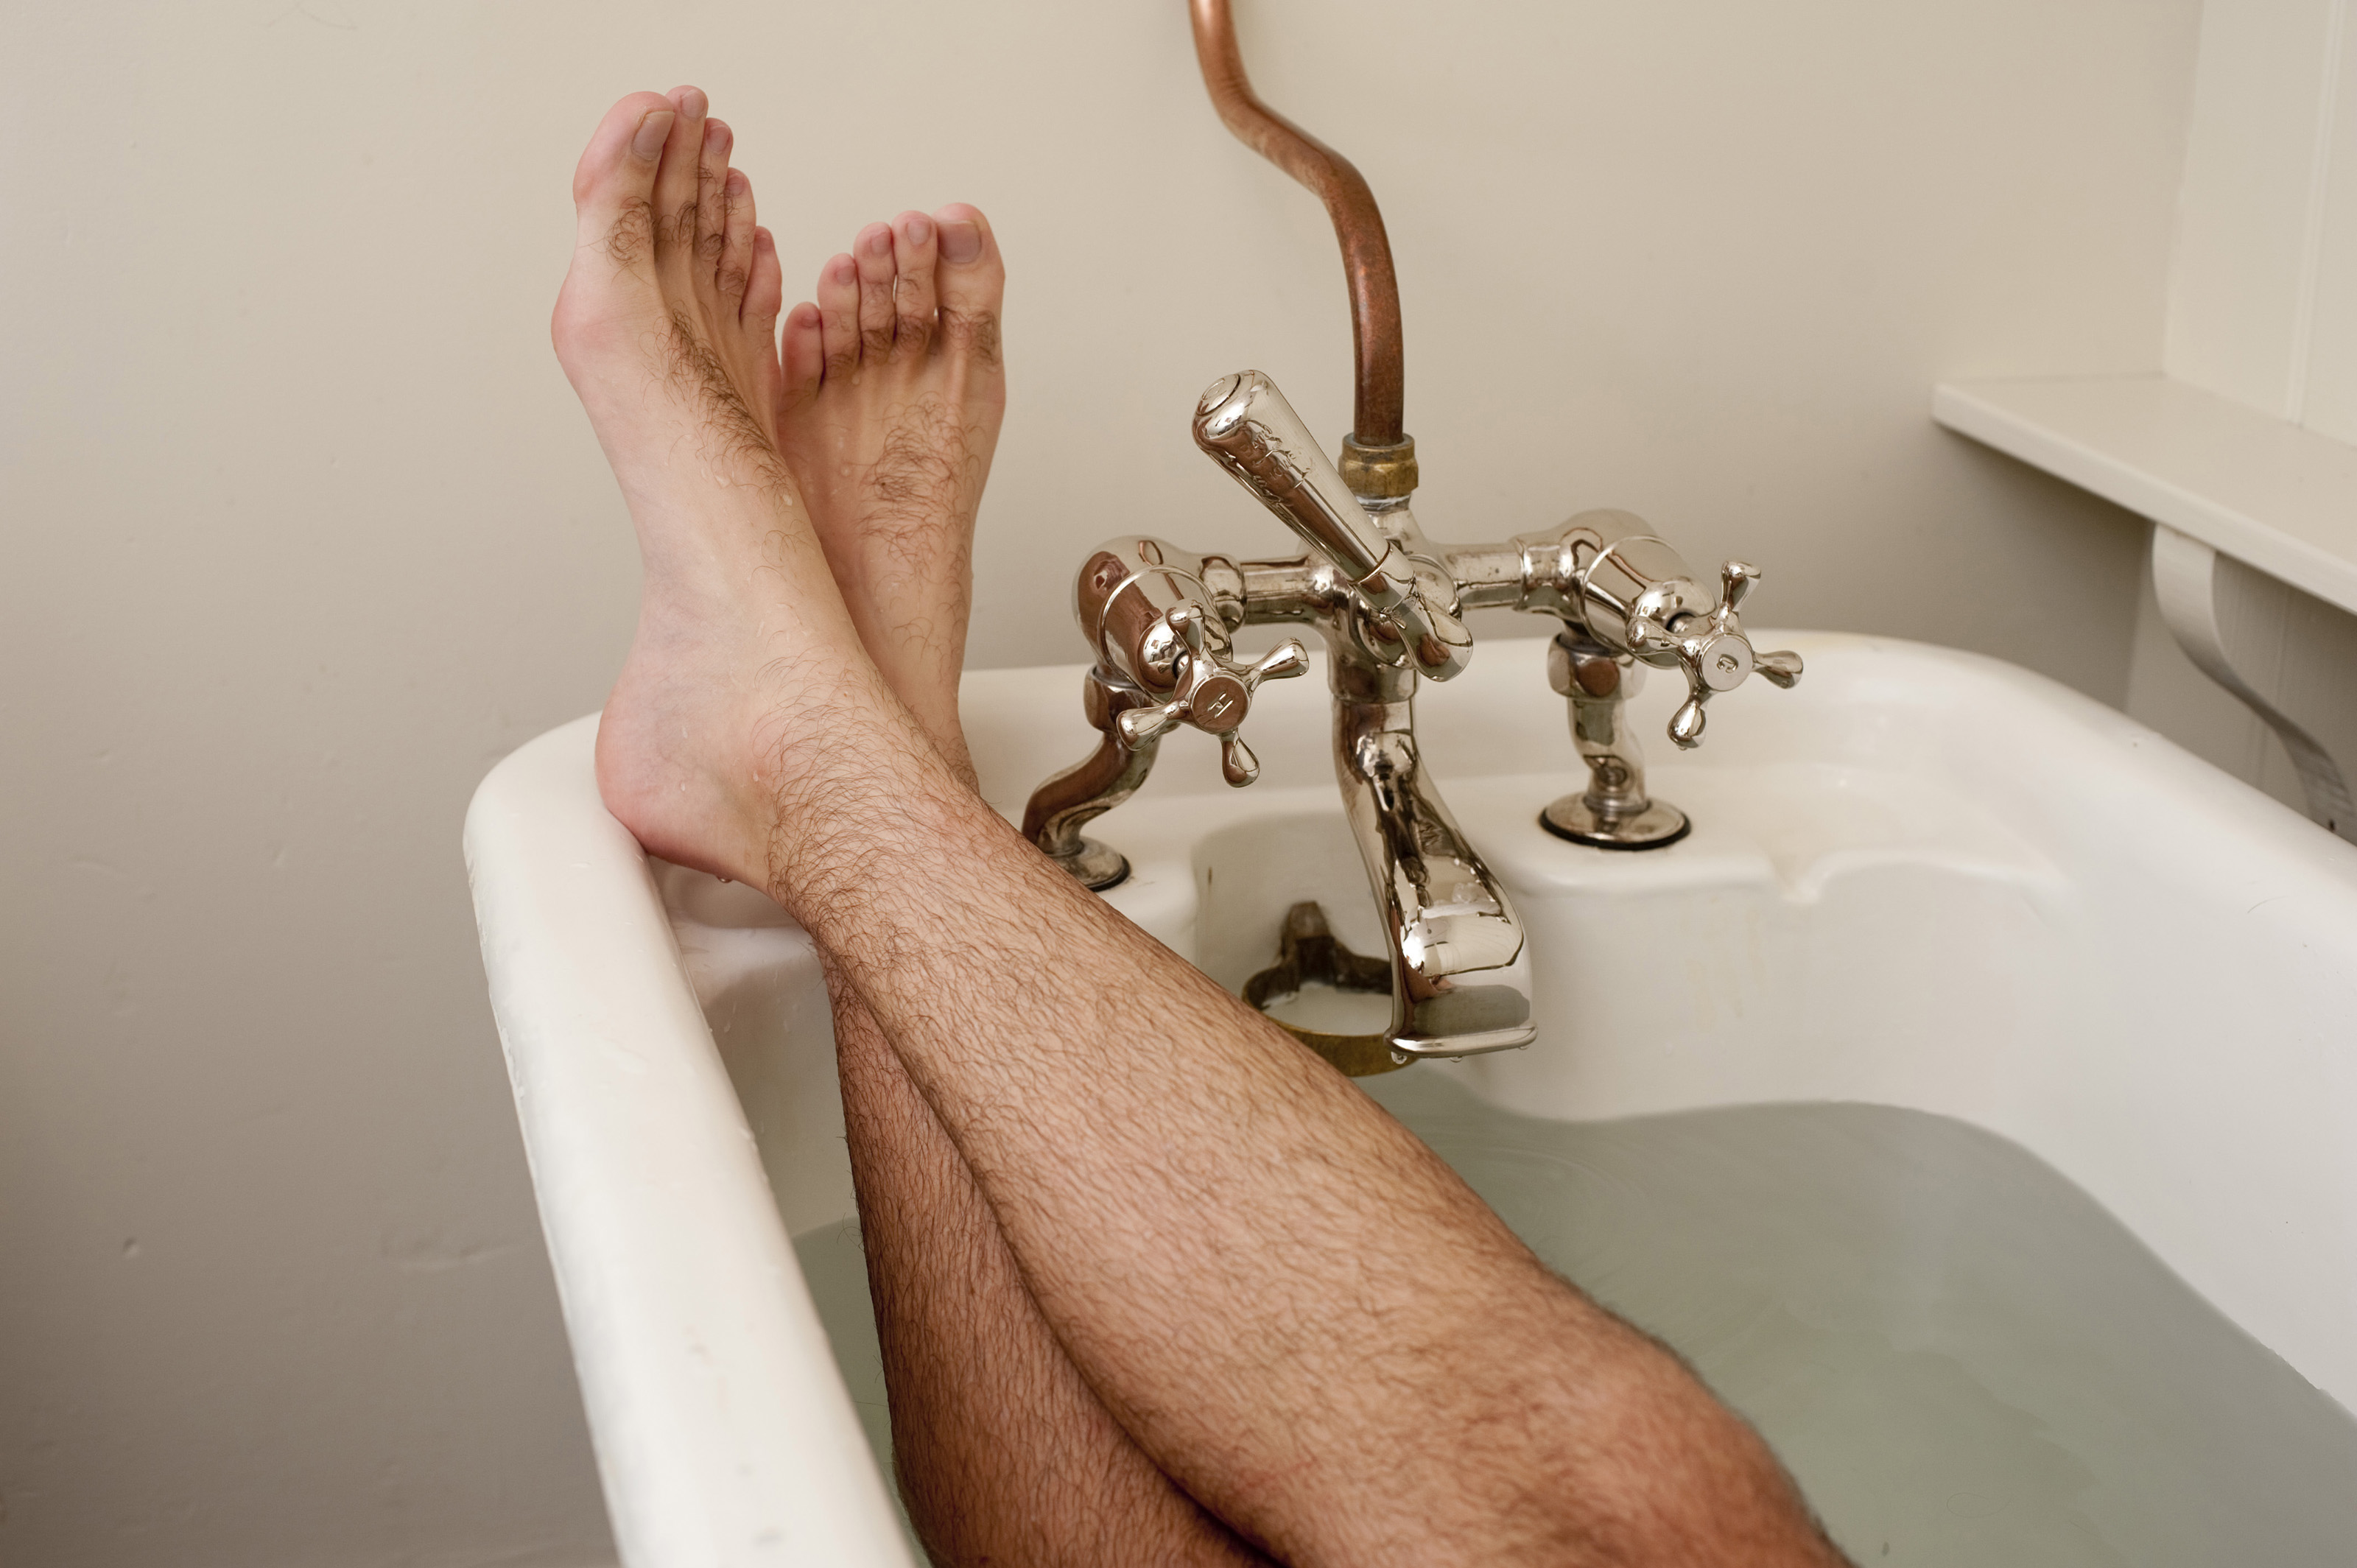 Free Stock Photo 6893 Relax in the bathtub | freeimageslive